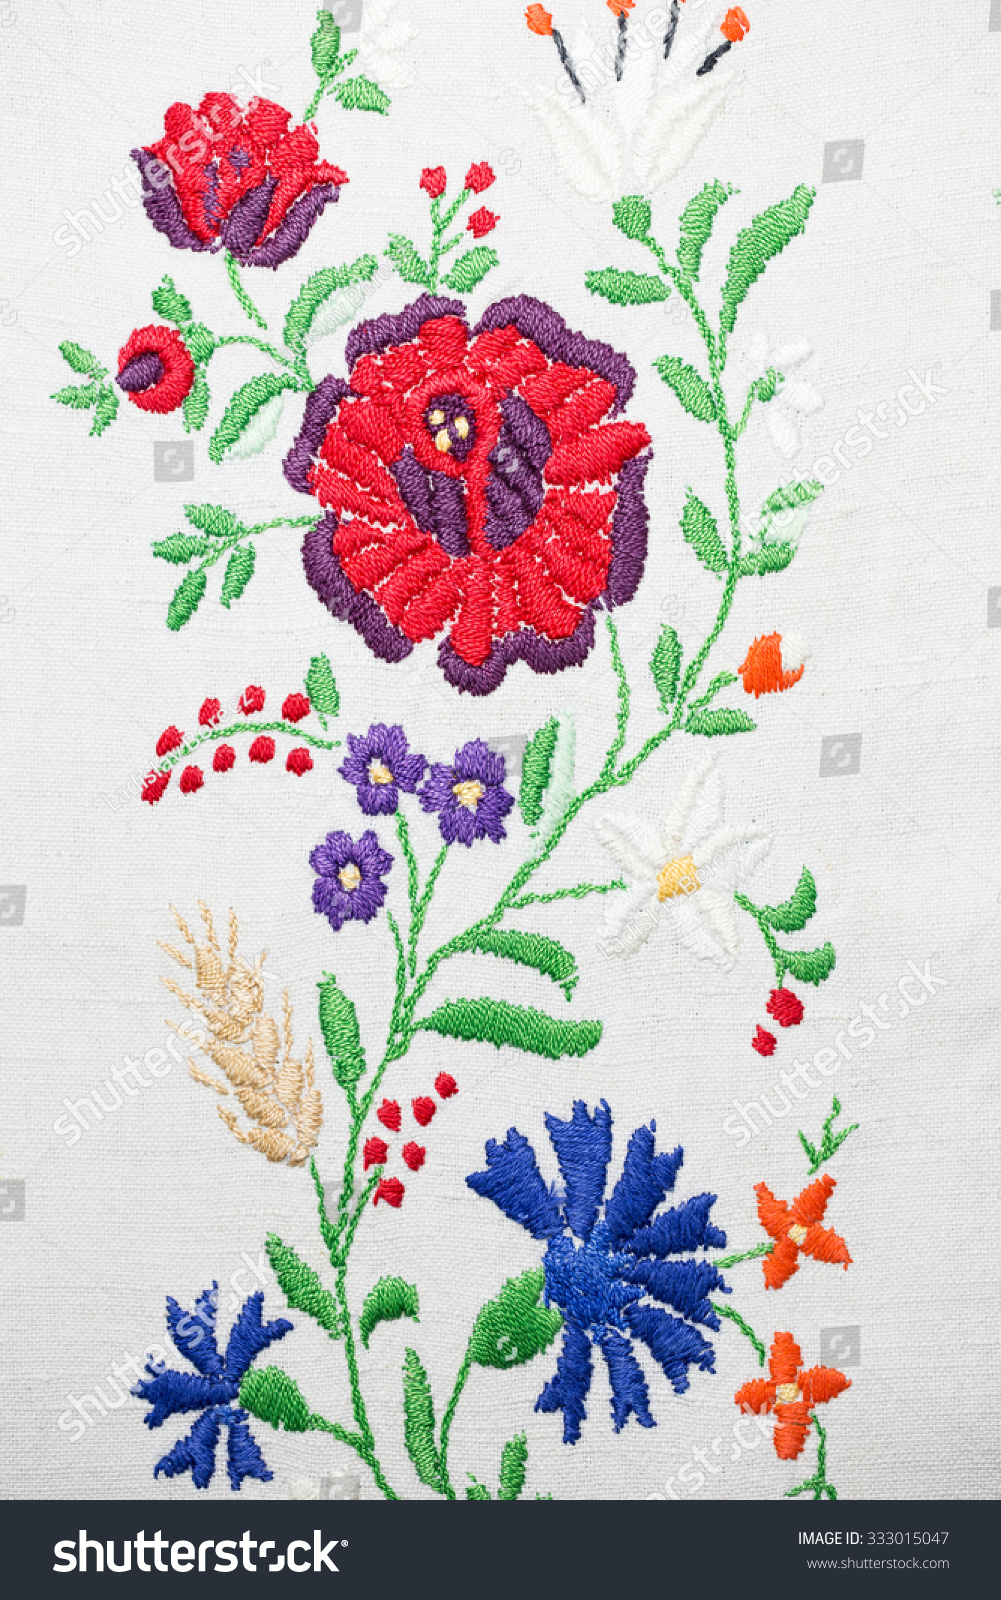 traditional embroidery Traditional embroidery of the slavs - the rectangular shape of the fabric indicates a life's journey and the ornamentation captures the cultural ancestral memory of the region.